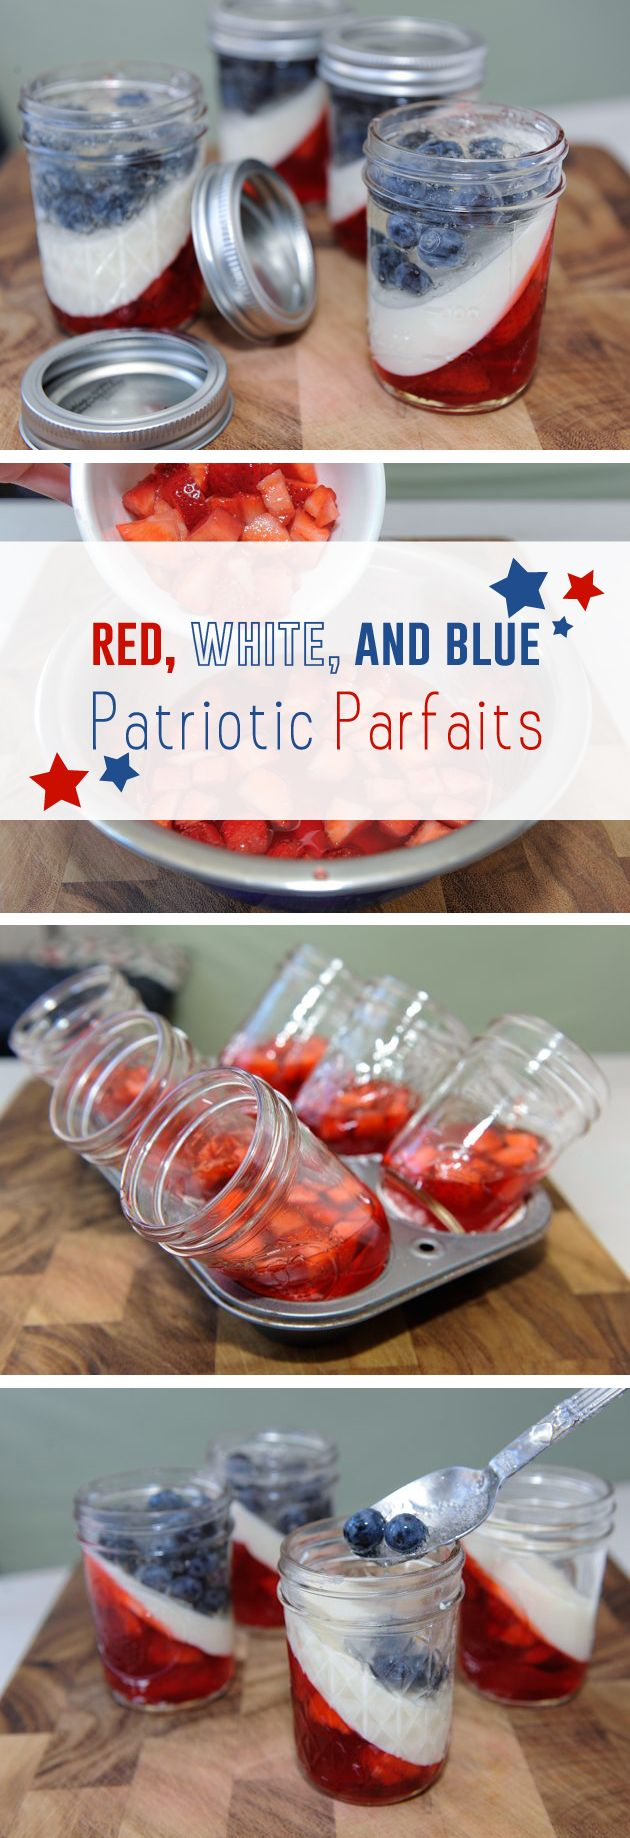 Celebrate summer and get patriotic with these red, white and blue gelatin parfaits. Impress friends and family with angled layers of strawberries, blueberries, and creamy vanilla ice cream. These cute little desserts, made in Mason jars, will get your backyard barbecue or rooftop fireworks display off to a festive start. Read more : http://www.ehow.com/info_12340443_red-white-blue-patriotic-parfaits.html?utm_source=pinterest.com&utm_medium=referral&utm_content=article&utm_campaign=fanpage